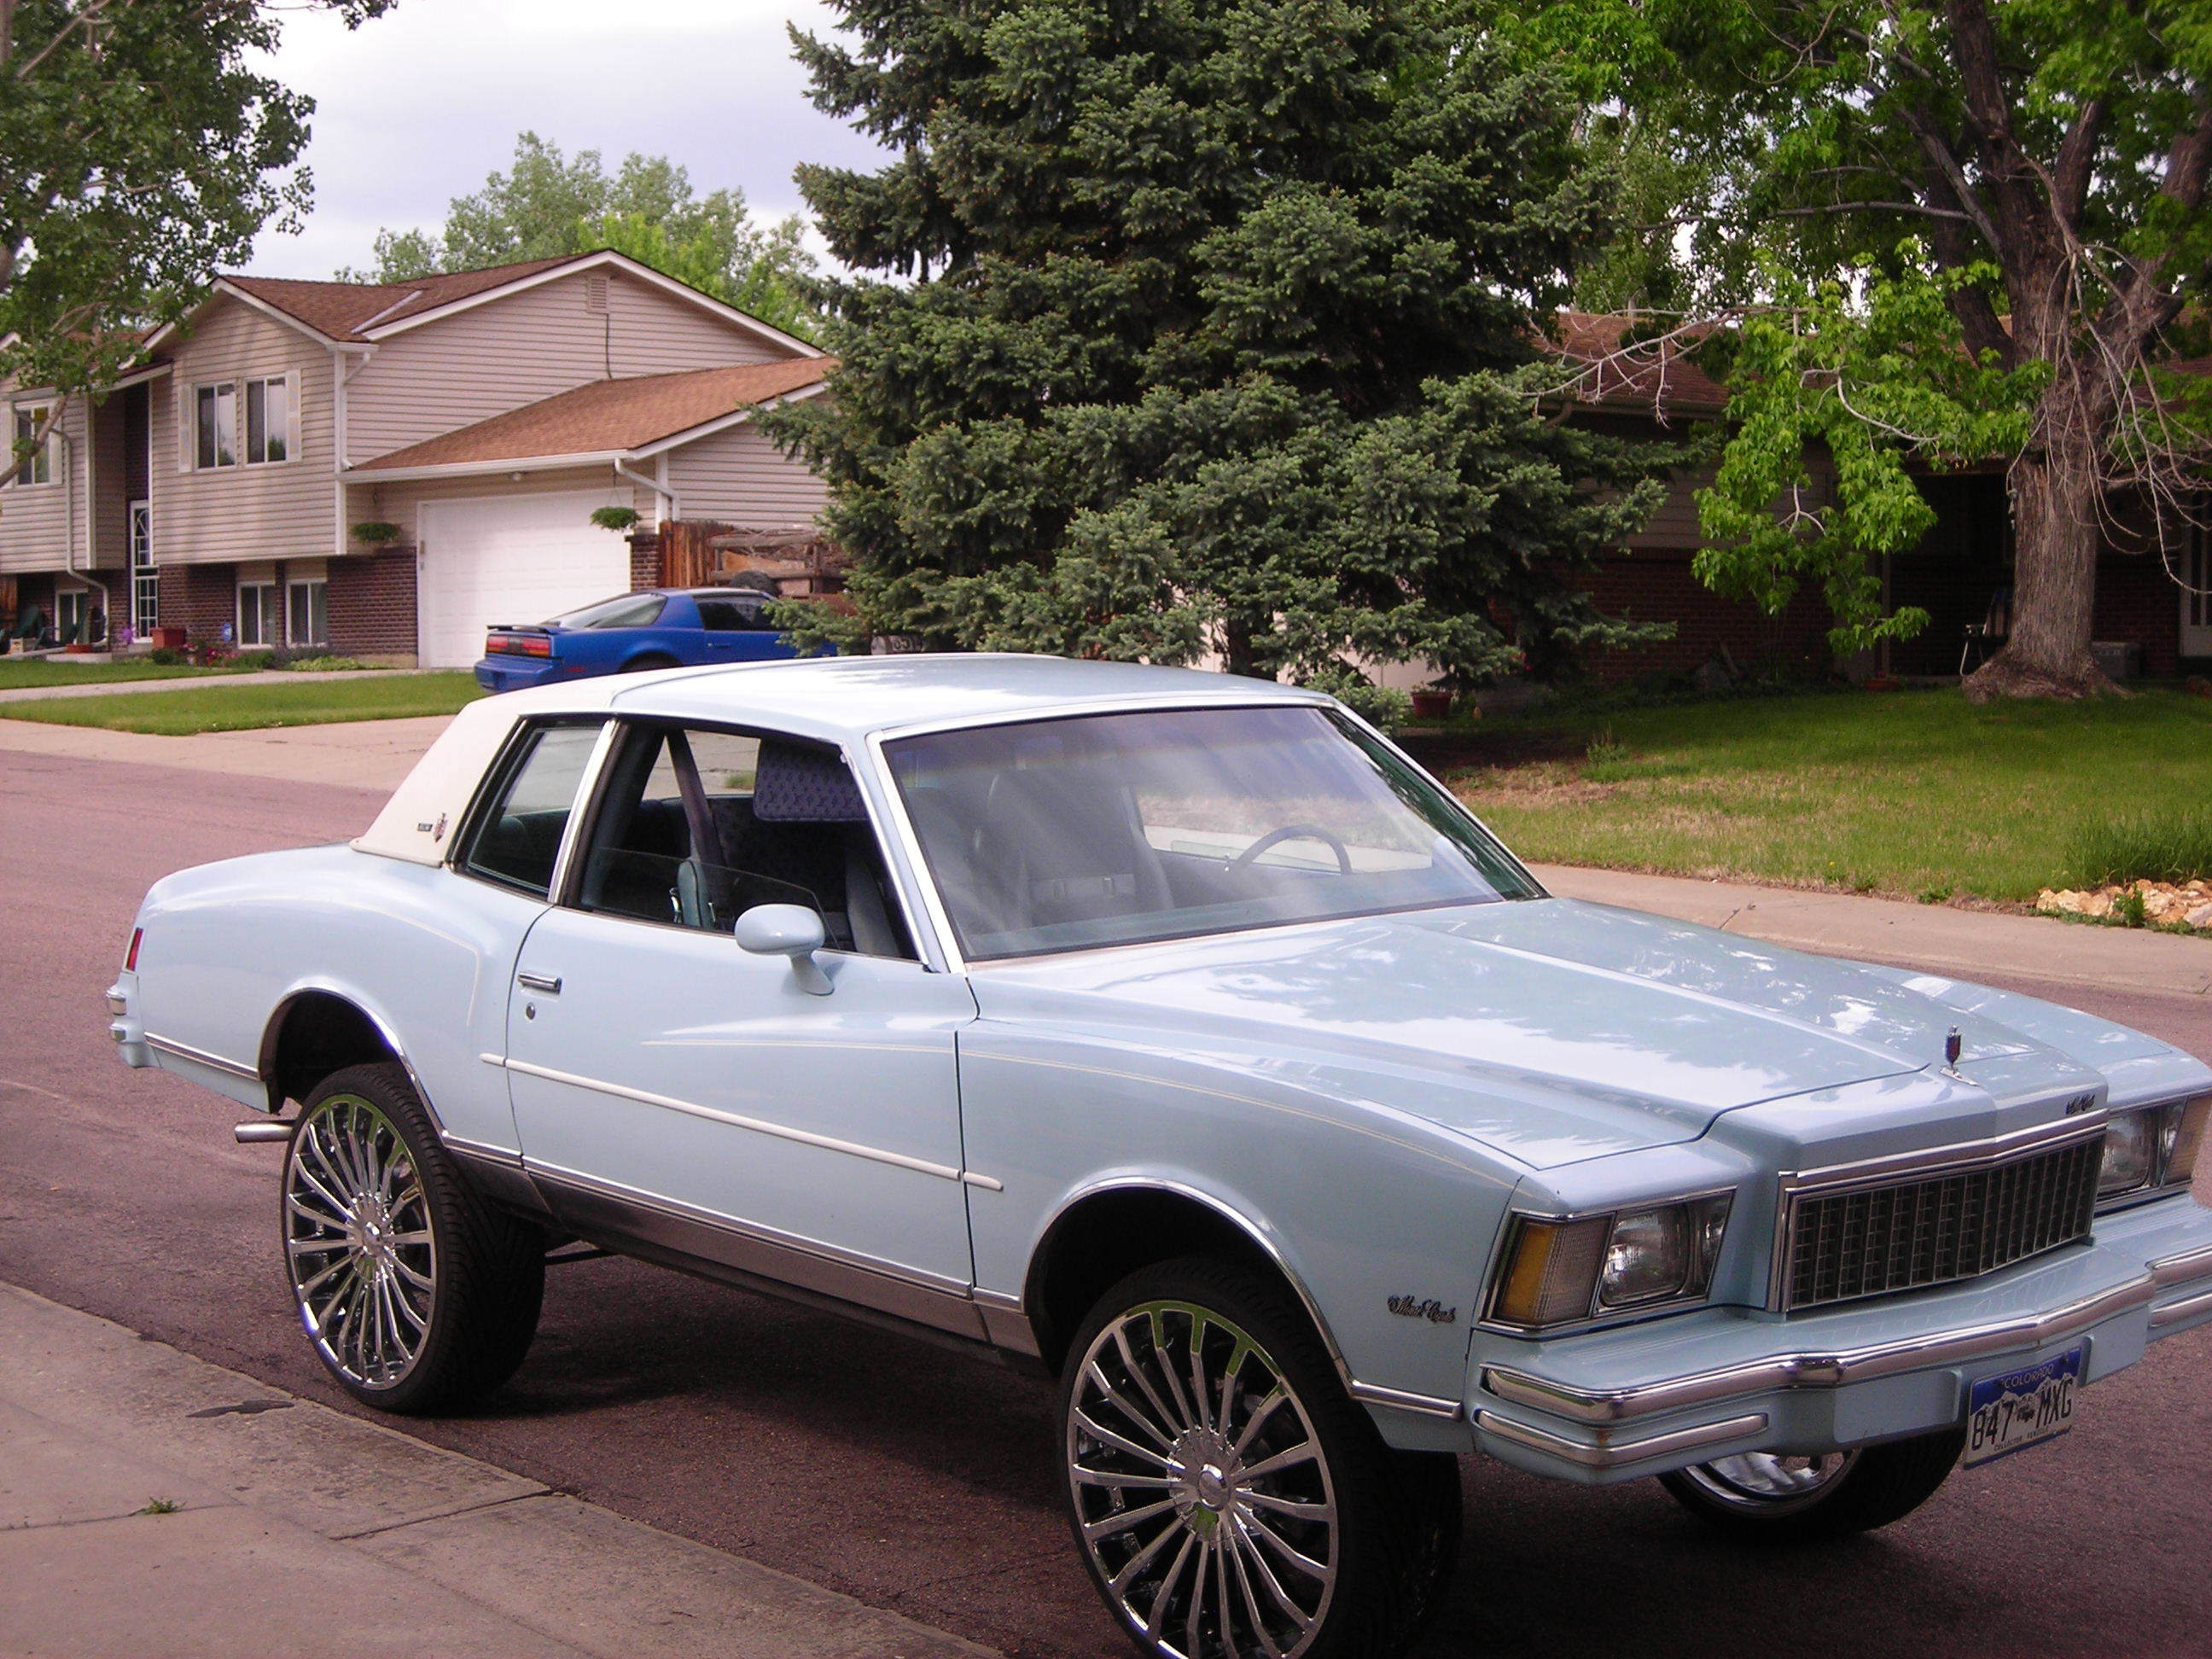 Another Chrisg720 1978 Chevrolet Monte Carlo post... - 13144023